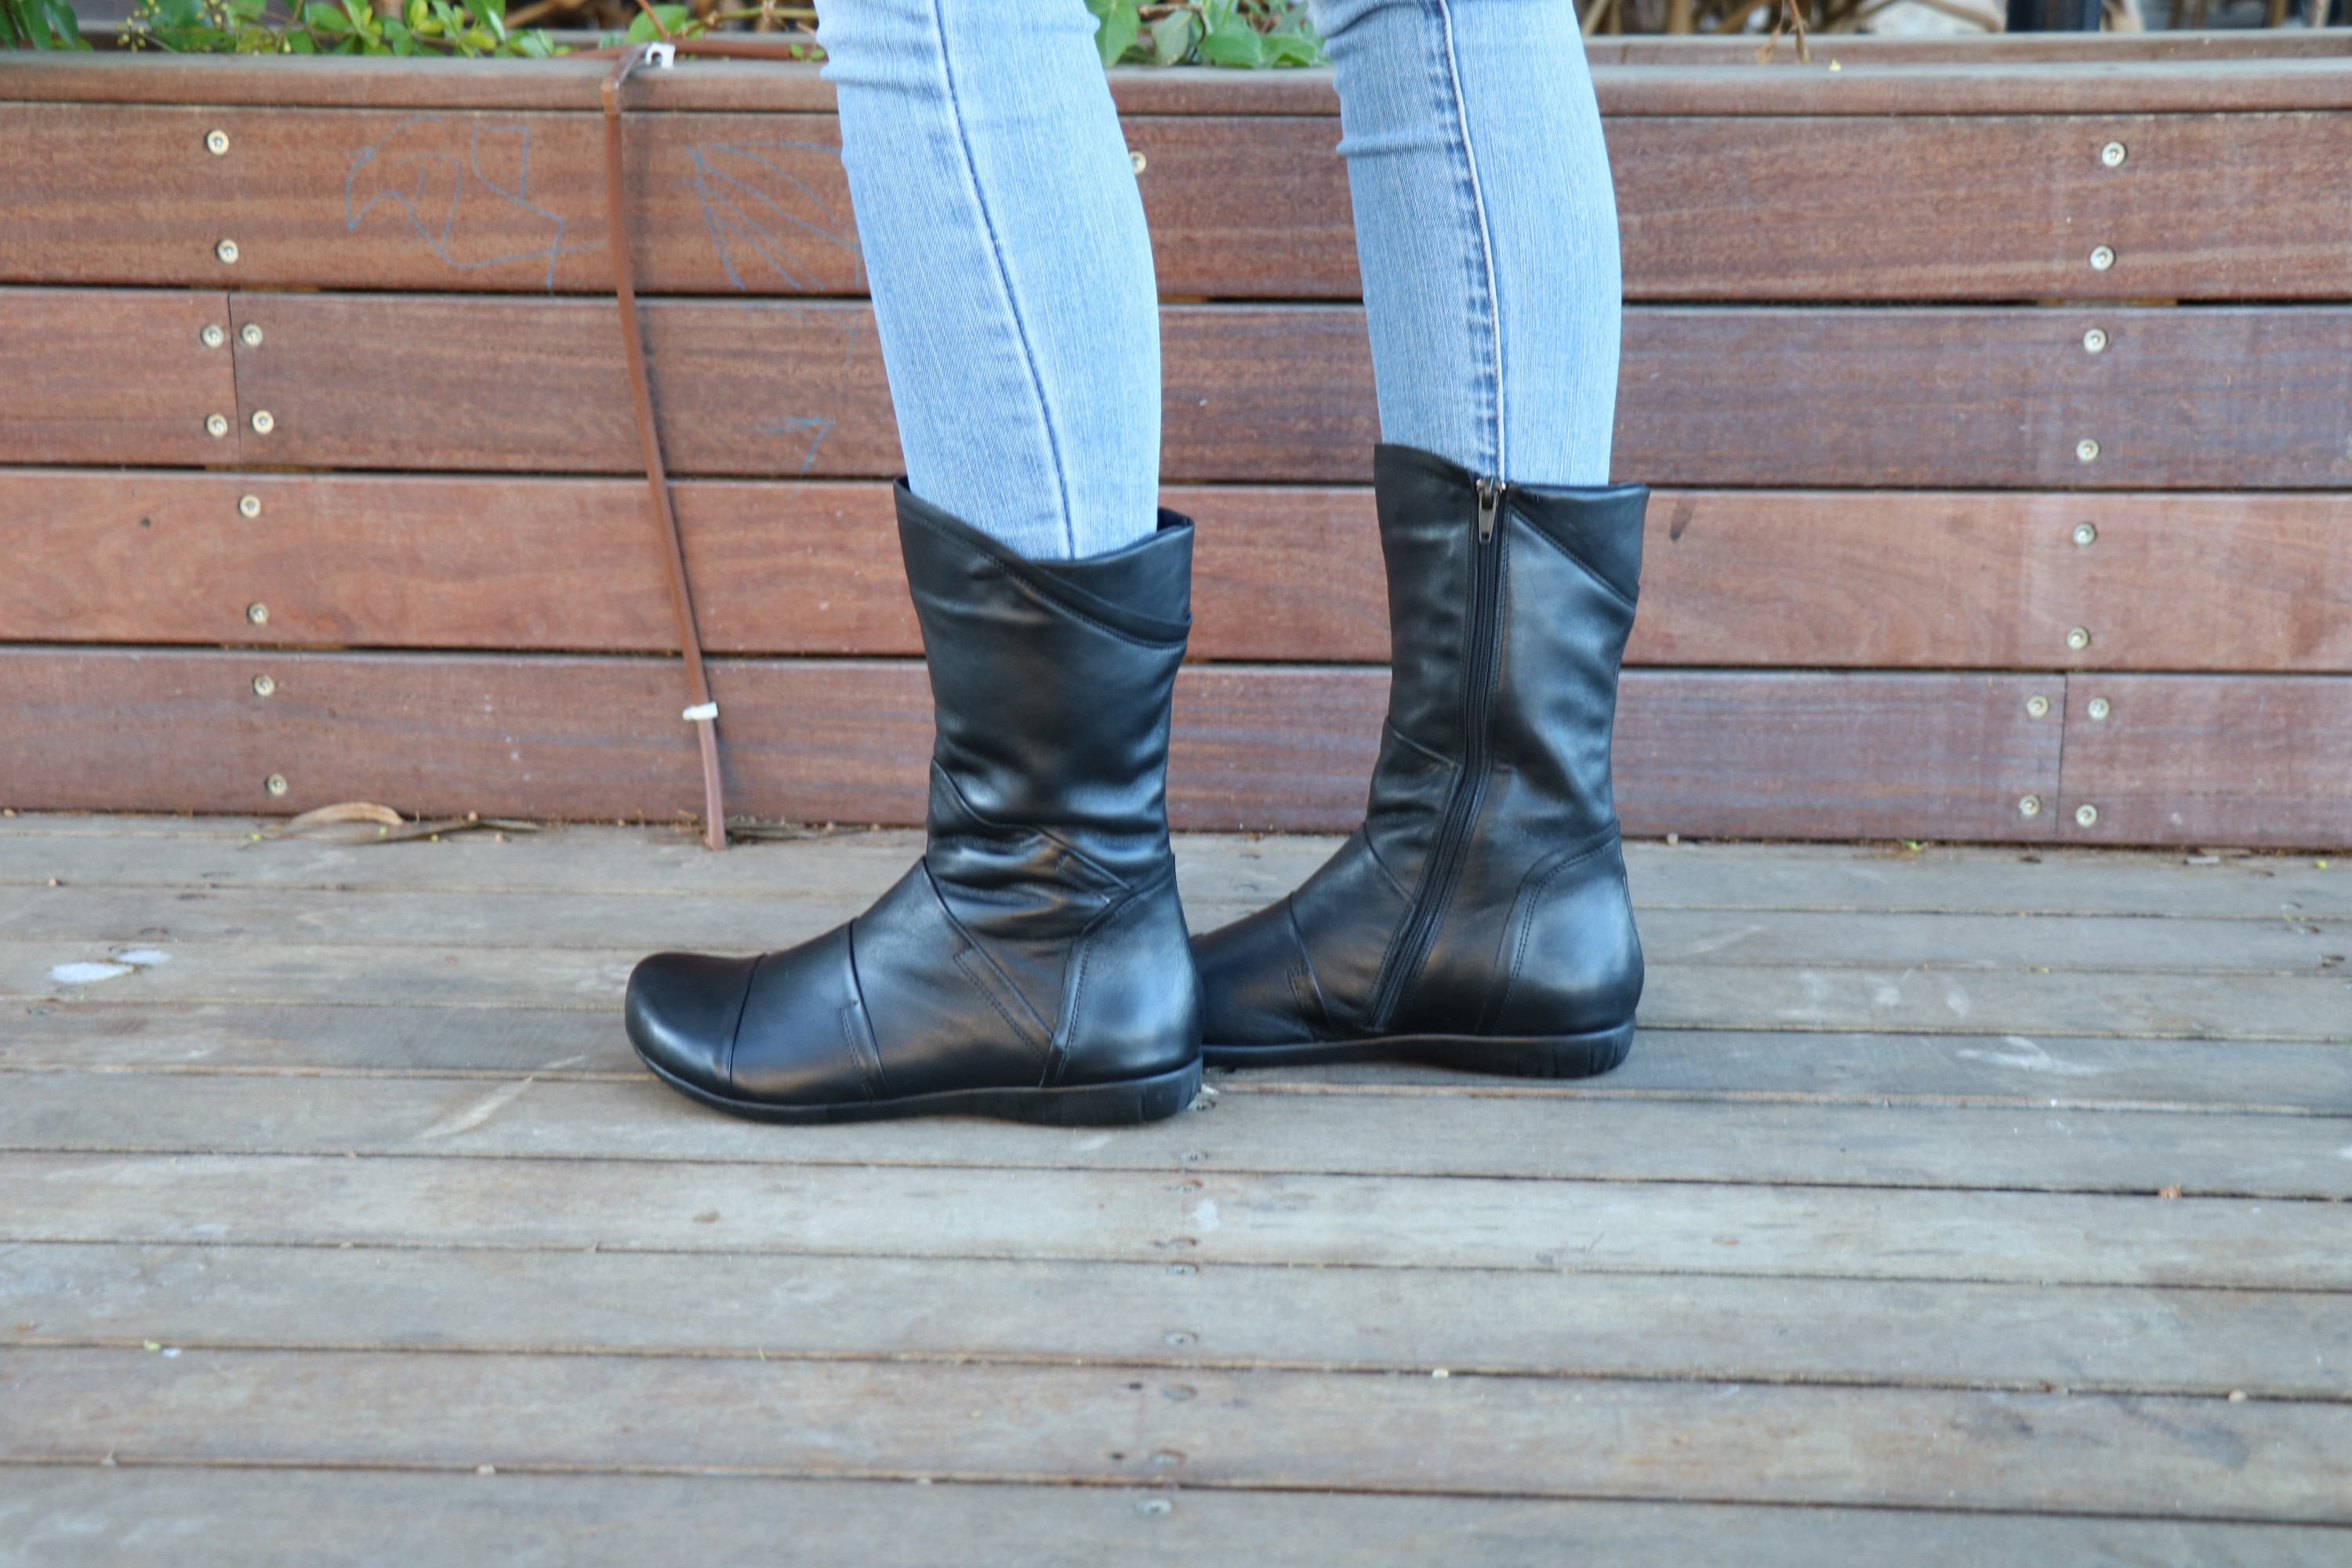 Black Leather, Handmade Boots, Leather Boots,  Zippered Boots, Boots, Women Boots, Ankle Boots, Zippered Winter Boots, Handmade Shoes, Wide Fit dc7ea3